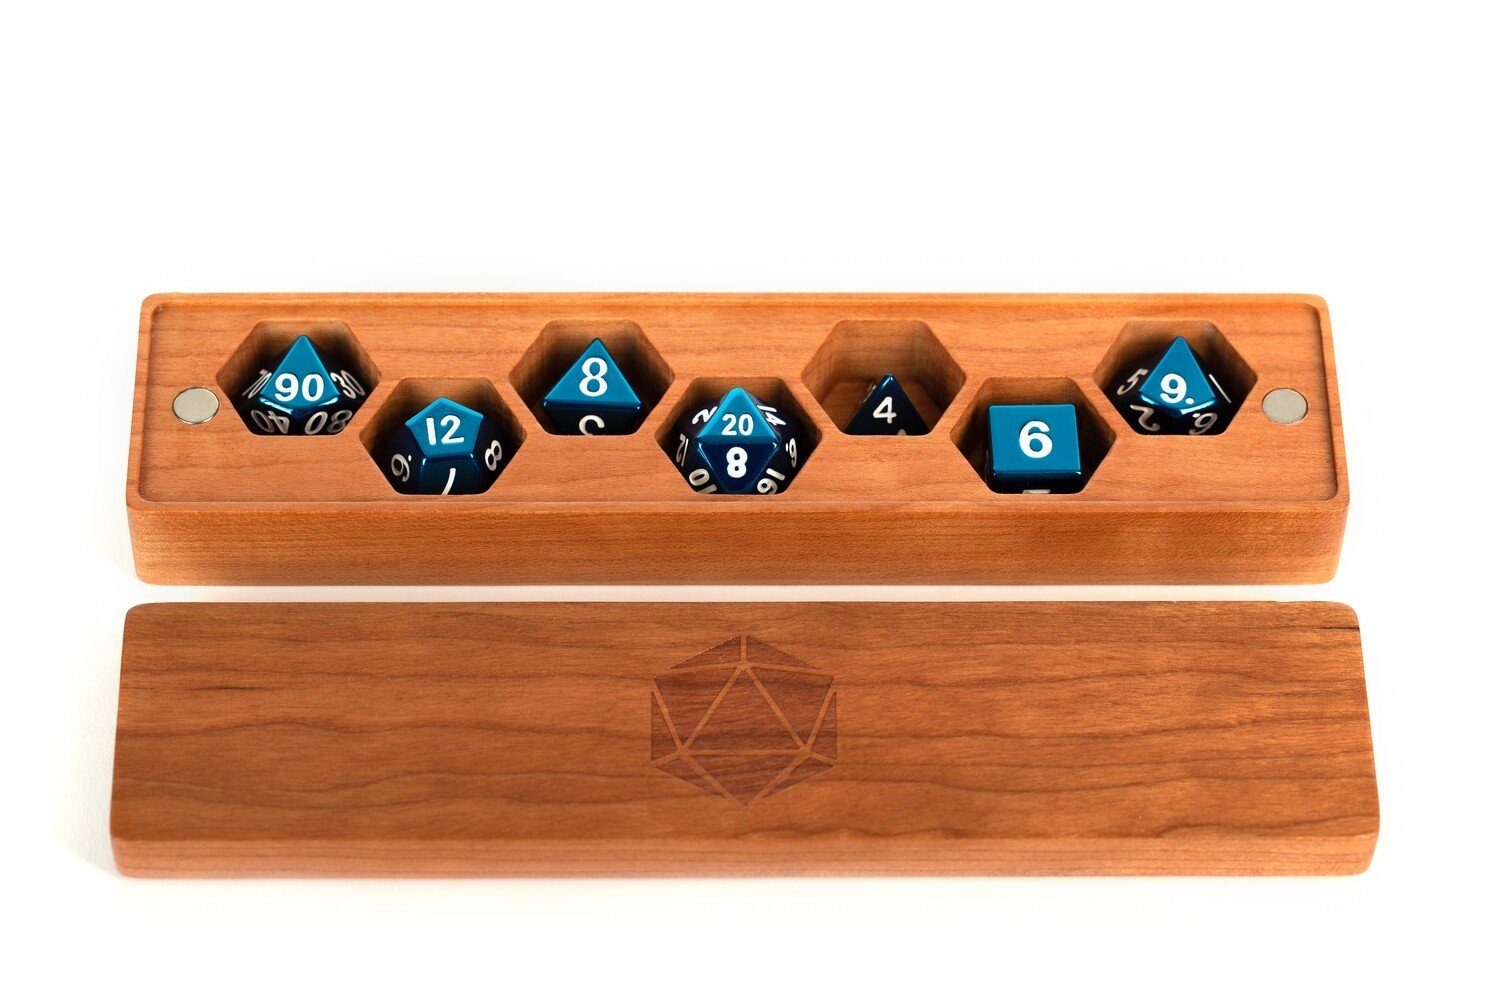 Premium Wood Dice Vault Case Polyhedral Gaming Dice RPG Role Play - Cherry